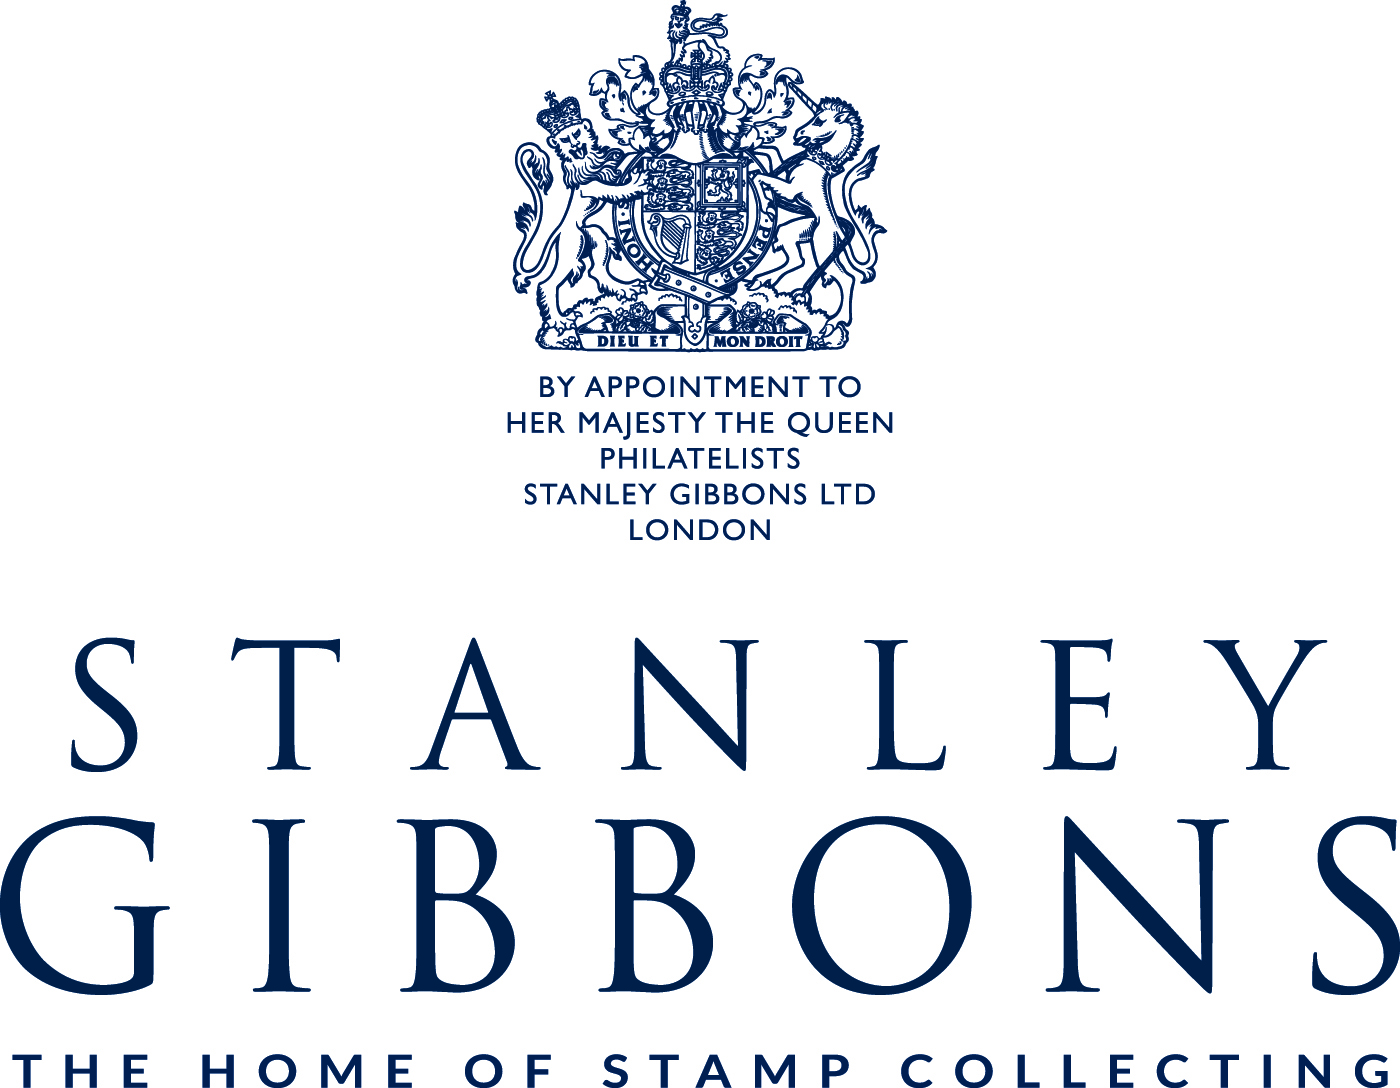 Stanley Gibbons